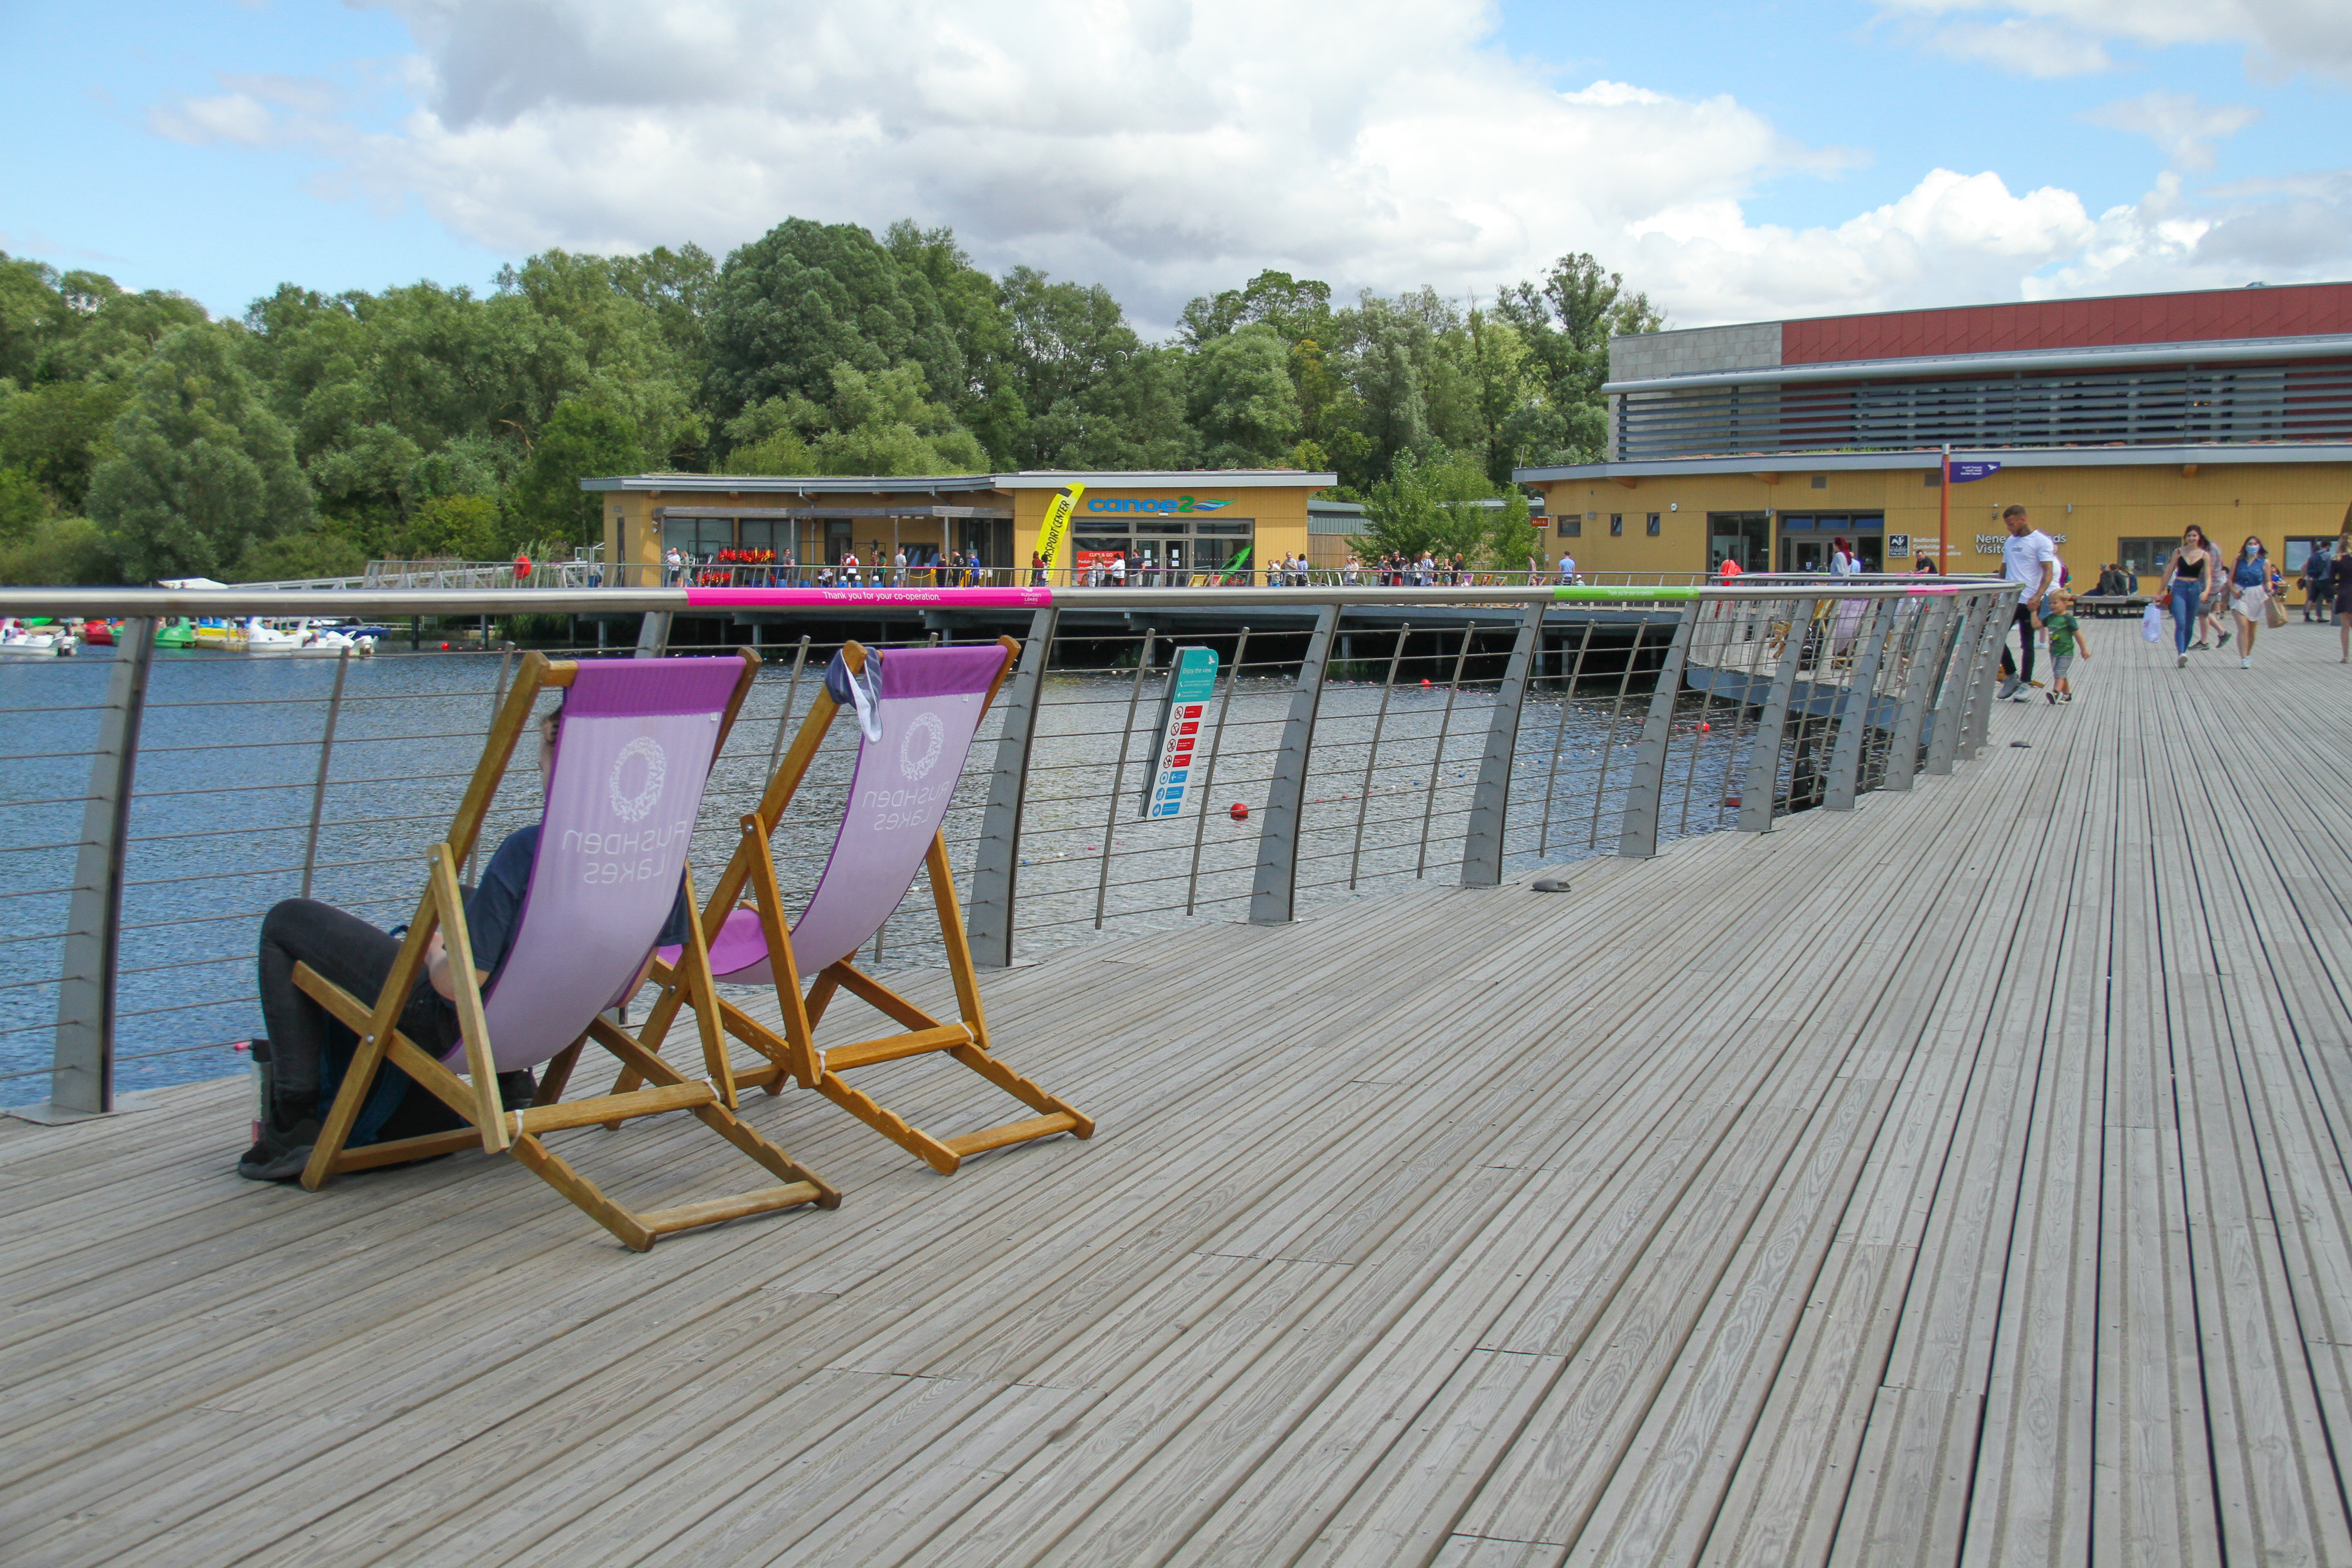 A man relax by the Rushden Lakes to enjoy the warm weather over the weekend With the warm weather in the UK, people ventured outdoors amidst the novel coronavirus pandemic reprise. (Photo by David Mbiyu / SOPA Images/Sipa USA)